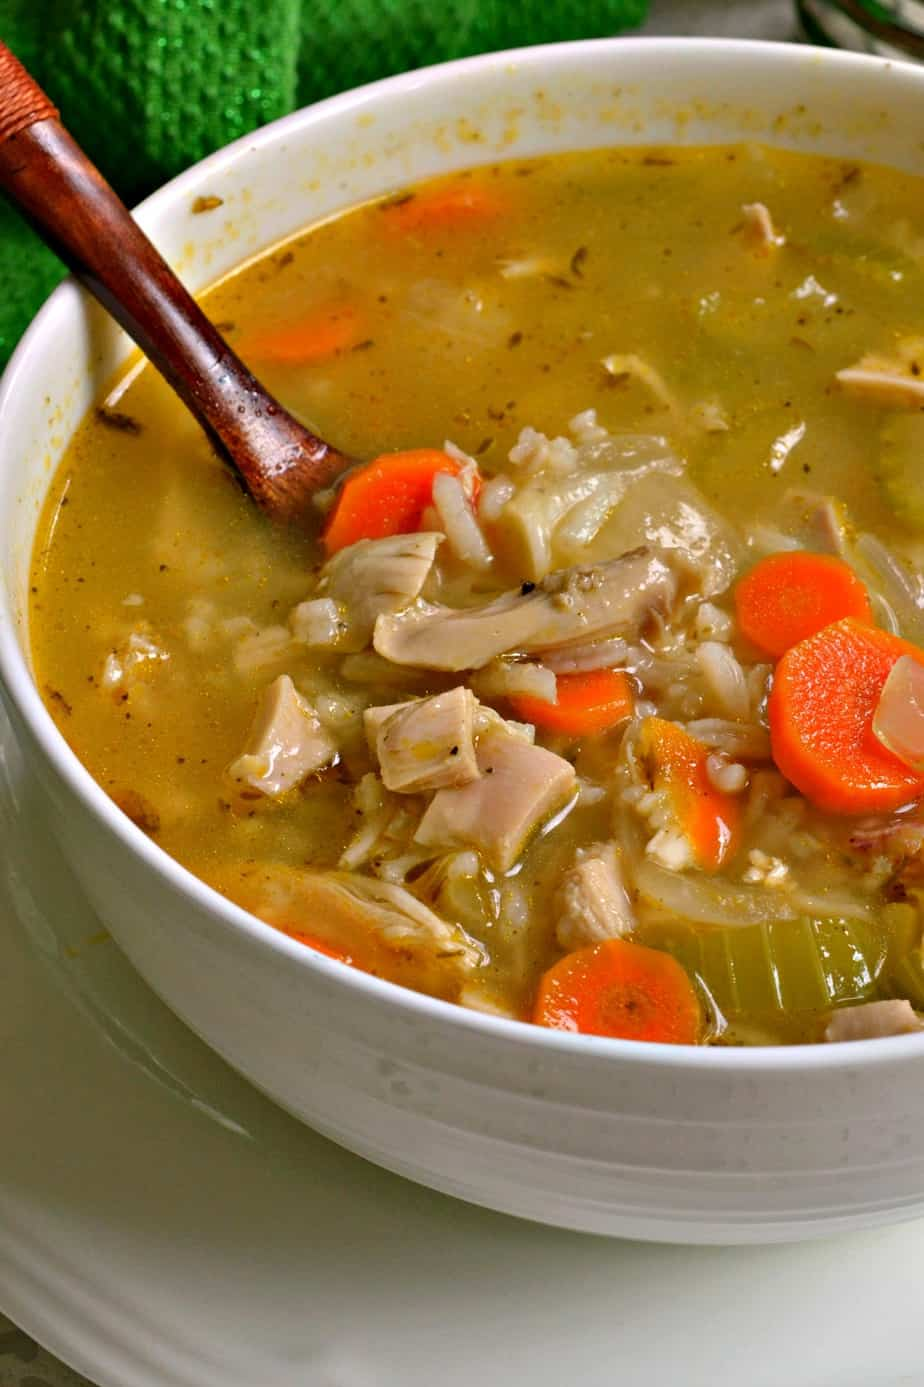 Delicious Chicken and Rice Soup full of carrots, celery, sweet onion, roasted chicken and tender white rice.